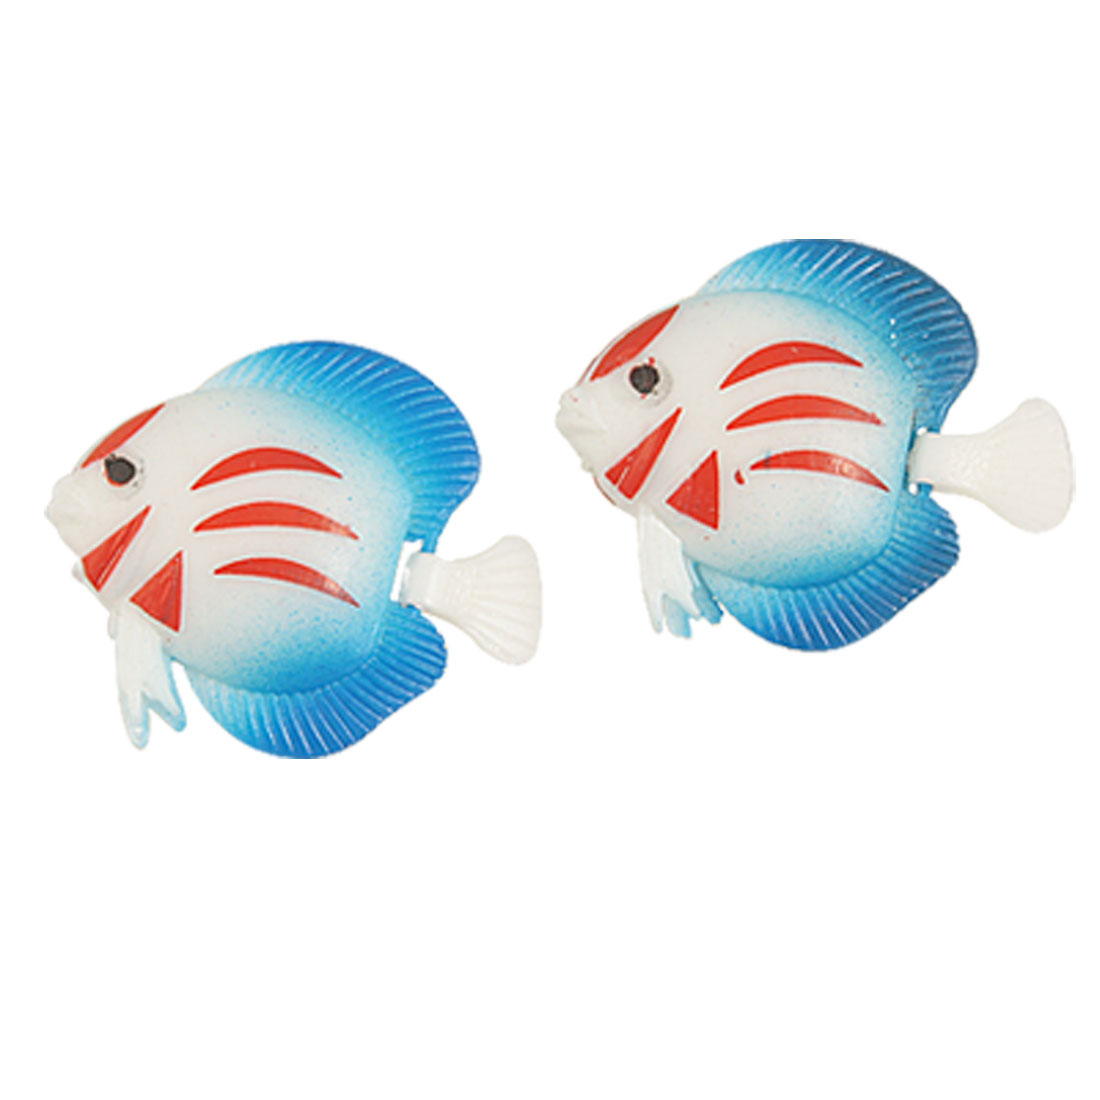 Plastic Swing Tail Water Floating Vivid Simulation Fish 2 Pcs